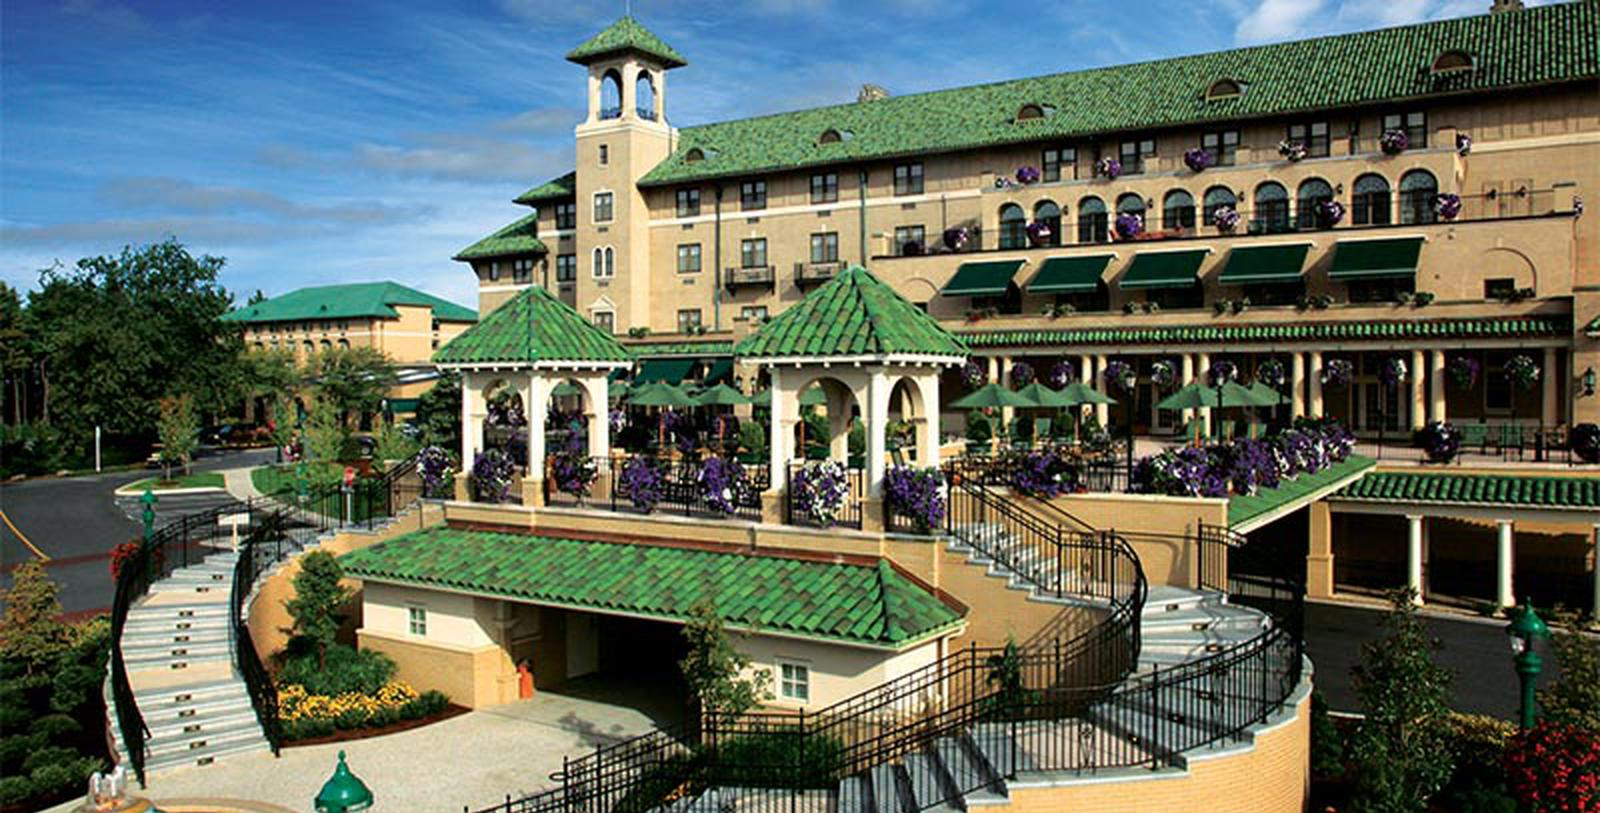 Image of exterior and entrance to The Hotel Hershey in Pennsylvania.